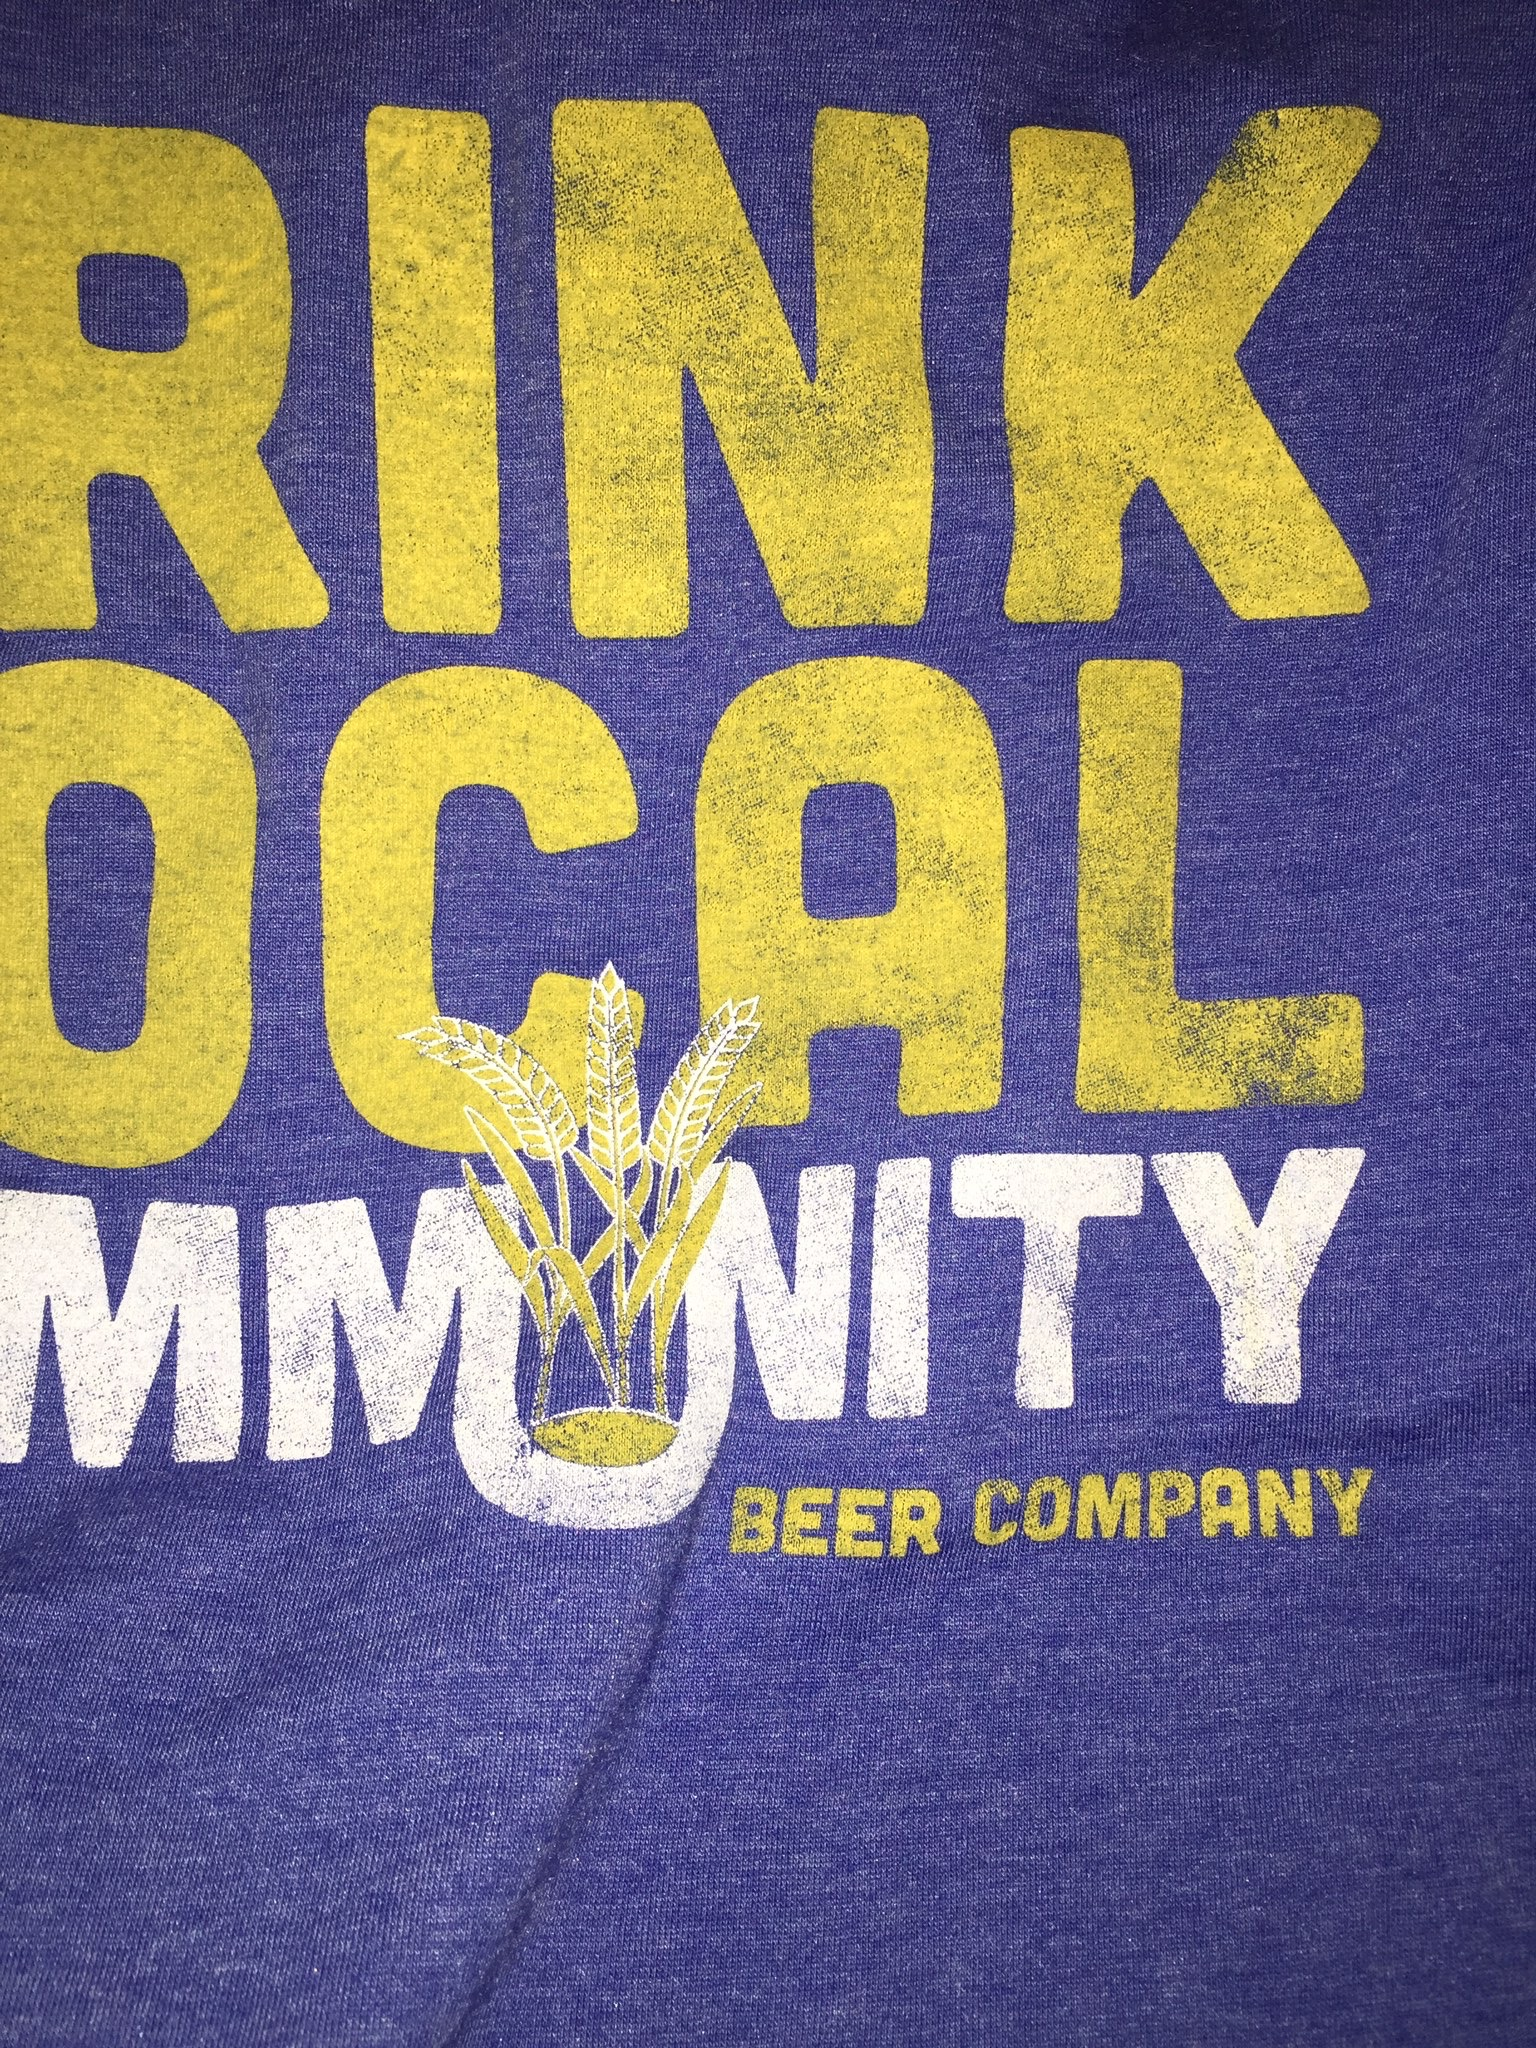 Community Beer Company Drink Local